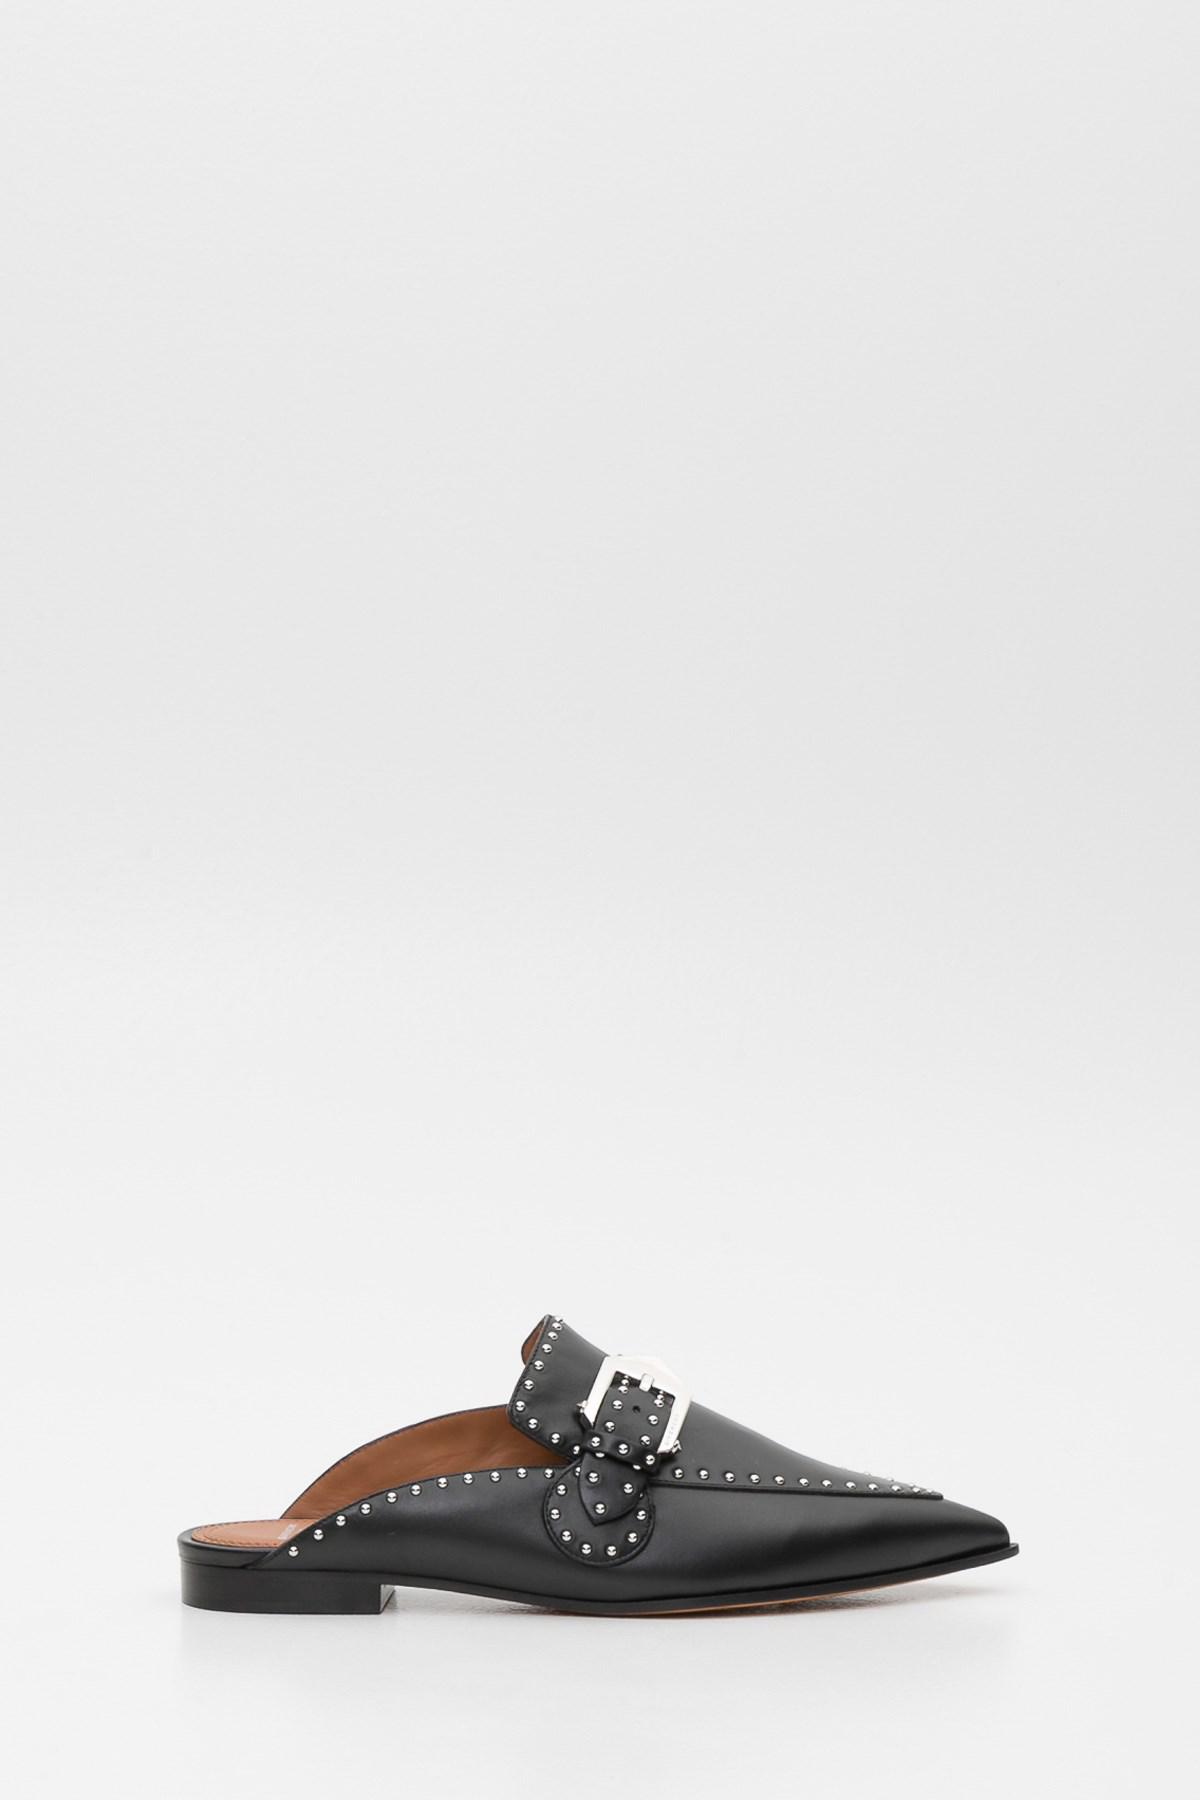 00950ee89 Givenchy. Women's Mule